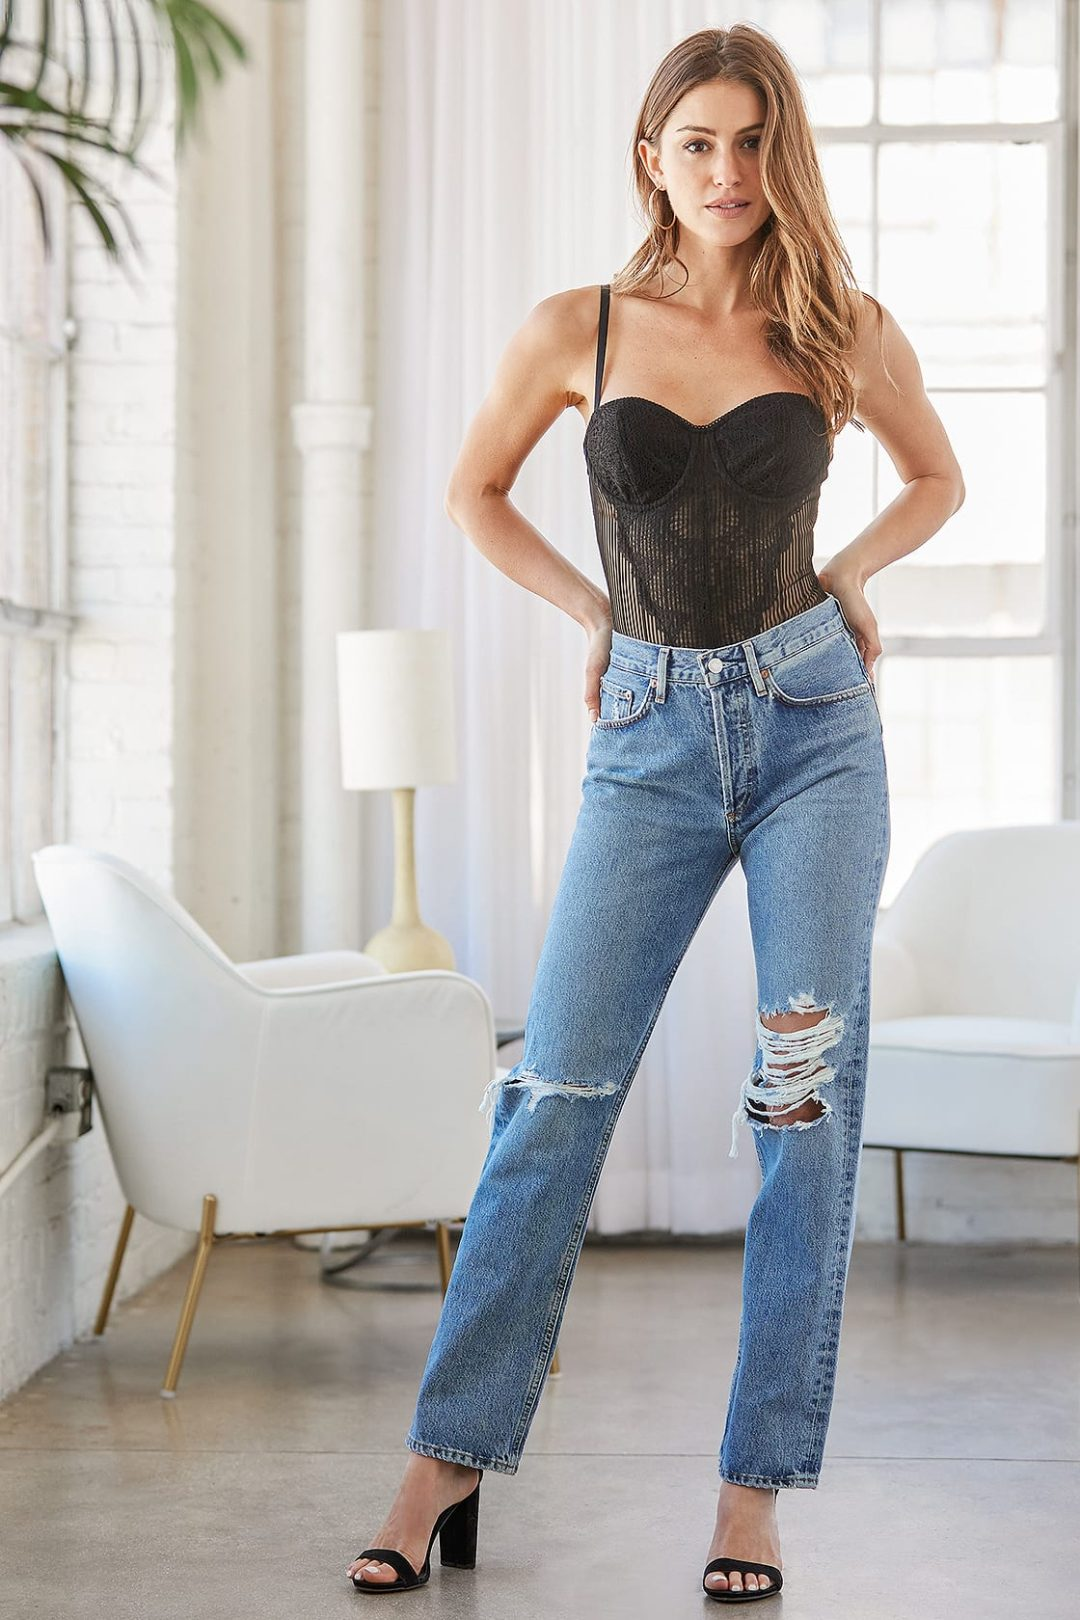 Cute black lace corset outfit with jeans